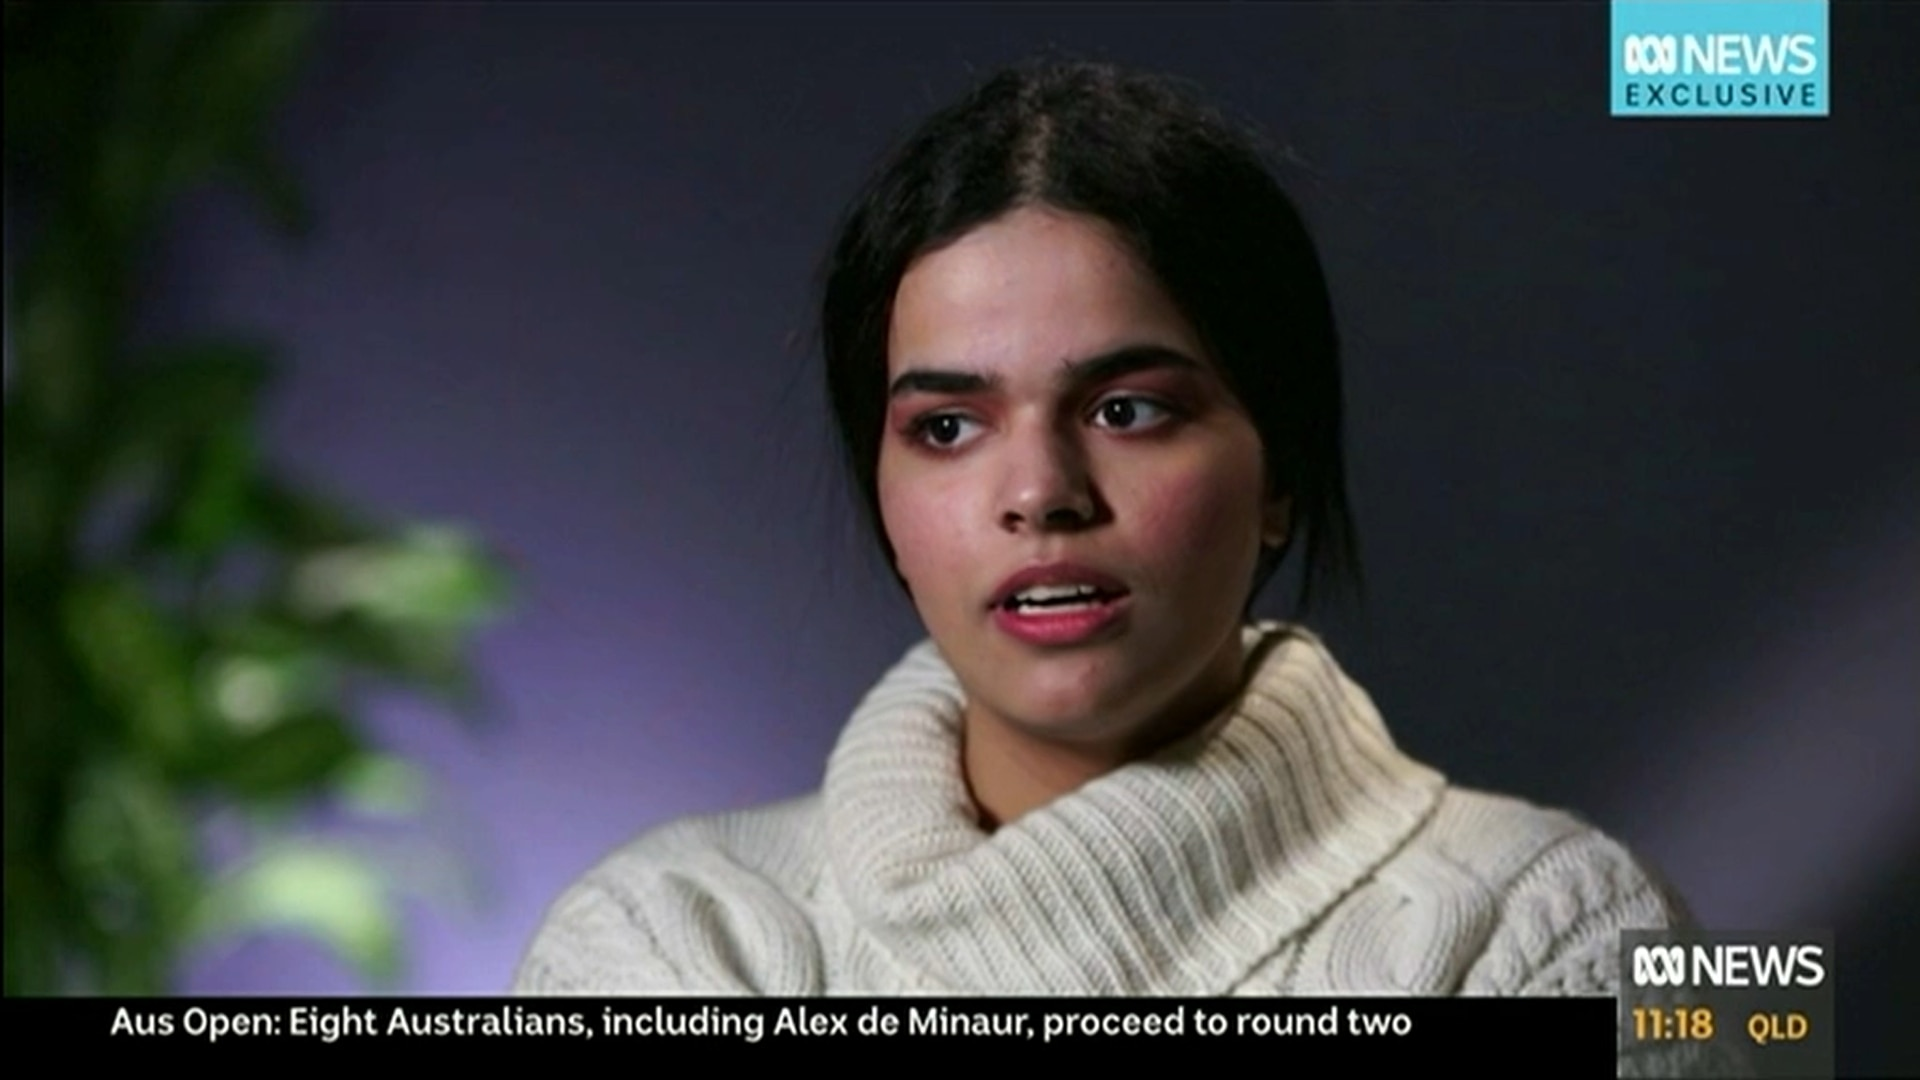 Will work in support of freedom for women globally: Rahaf Mohammed